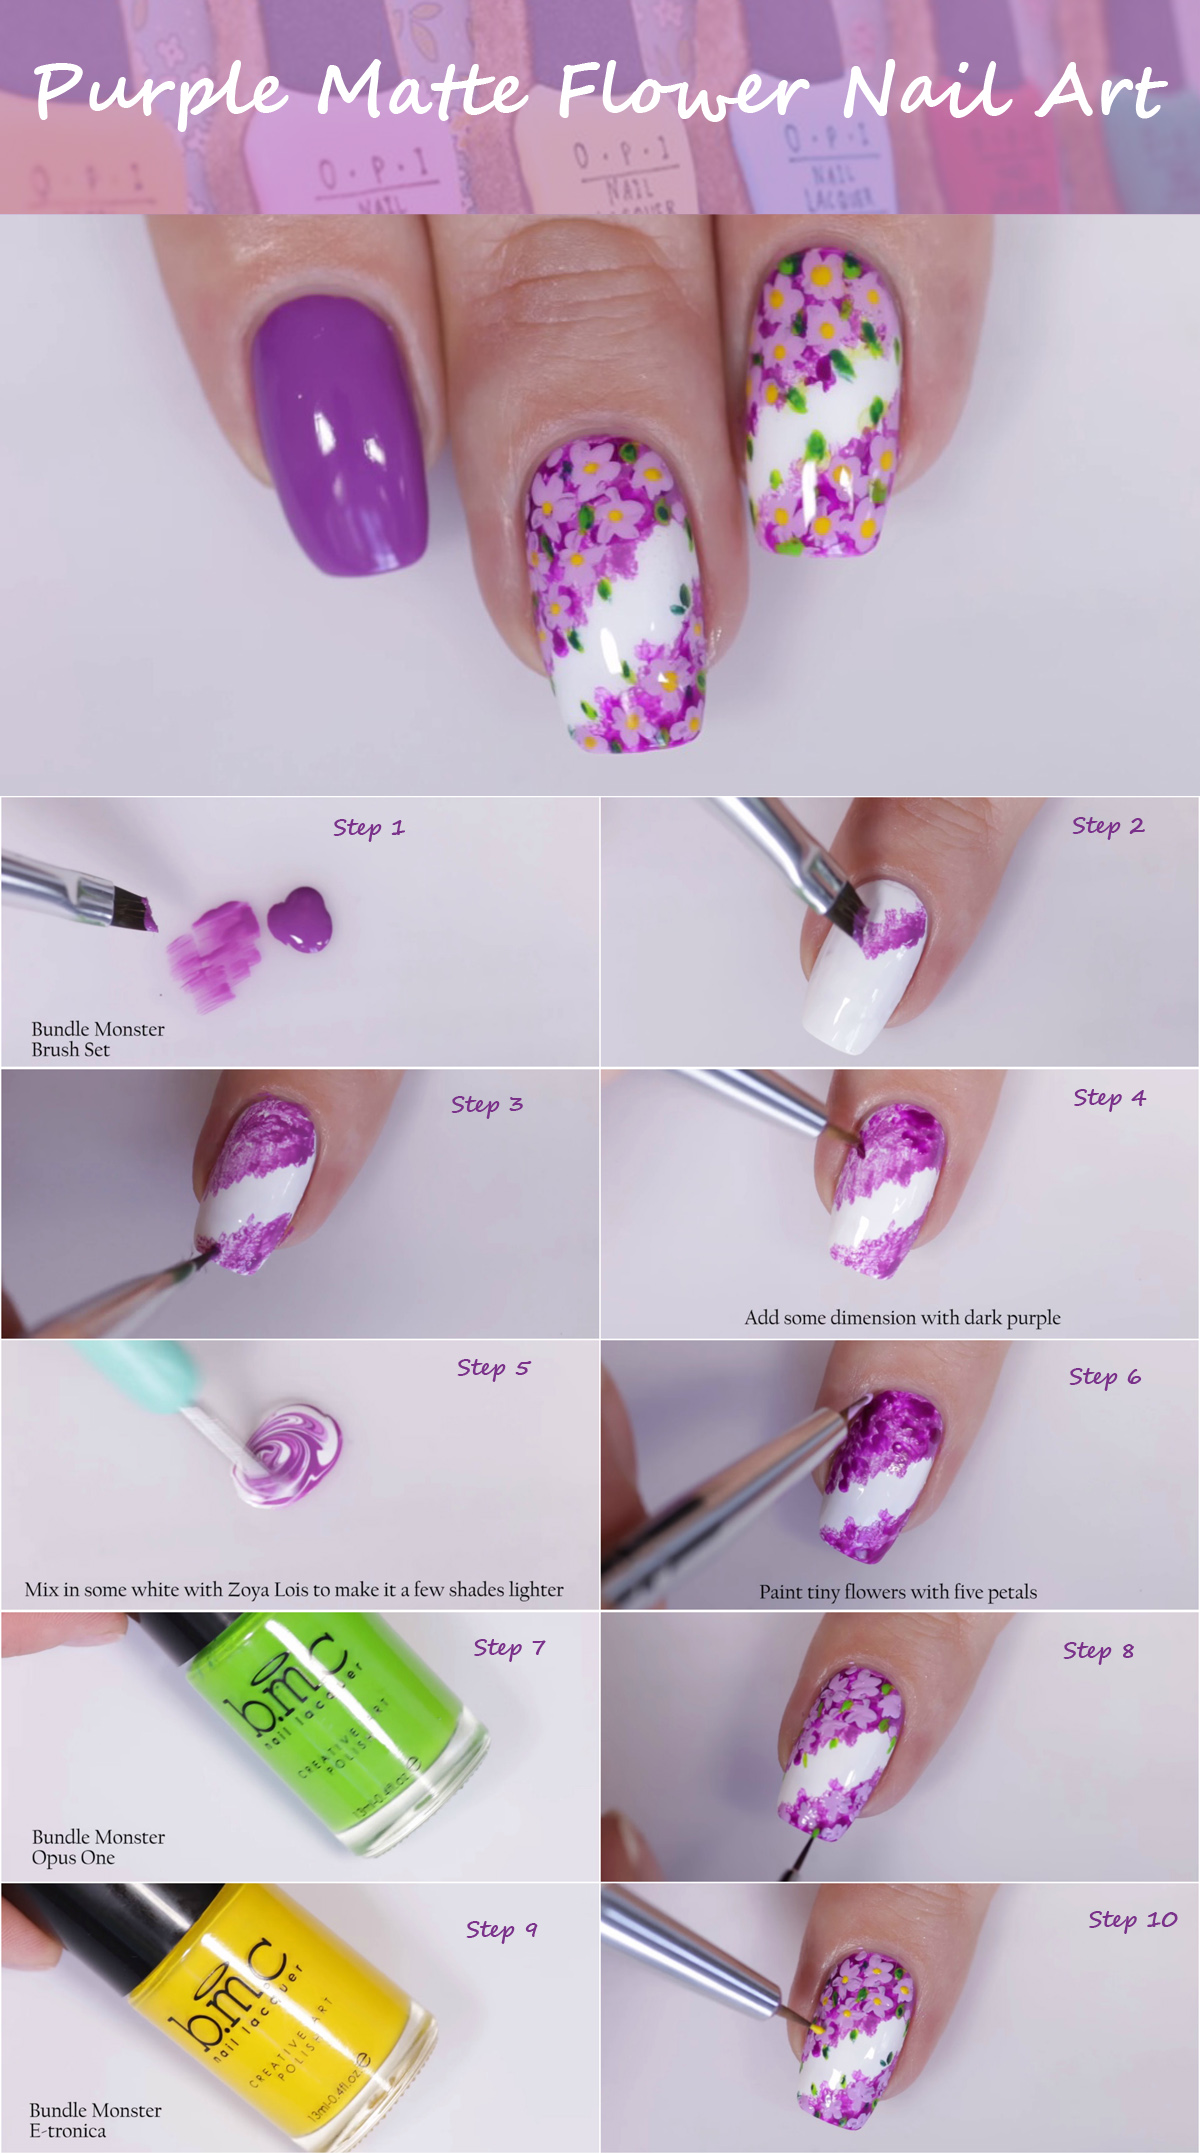 purple-matte-flower-nail-art